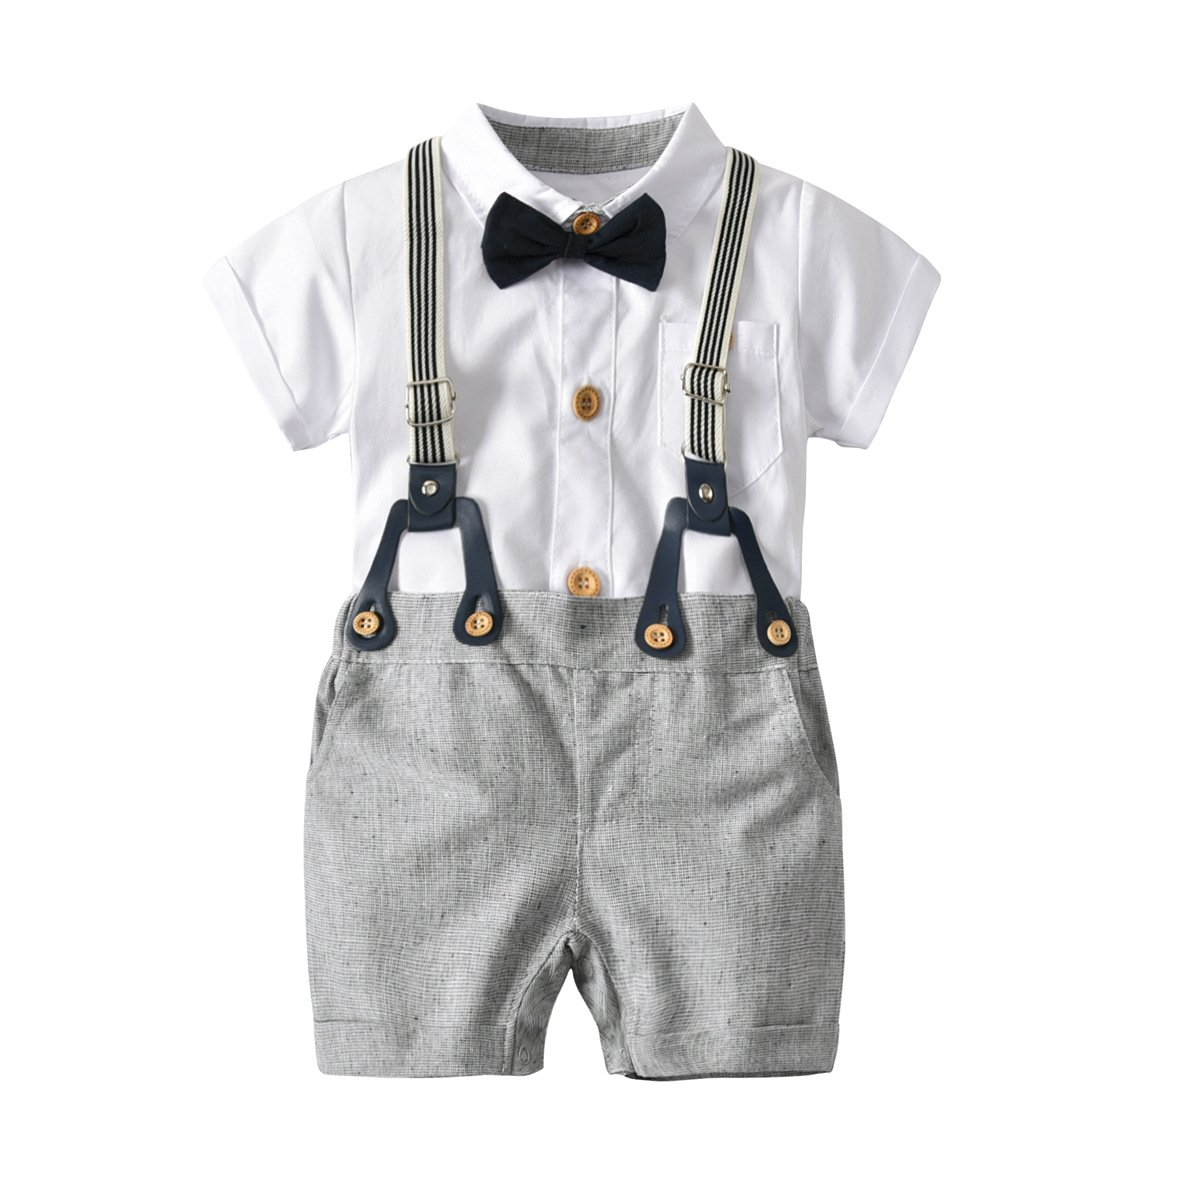 Fairy Baby Boys Short Gentle Outfits Suits, White Shirt+Bib Pants+Bow Tie Clothing Set